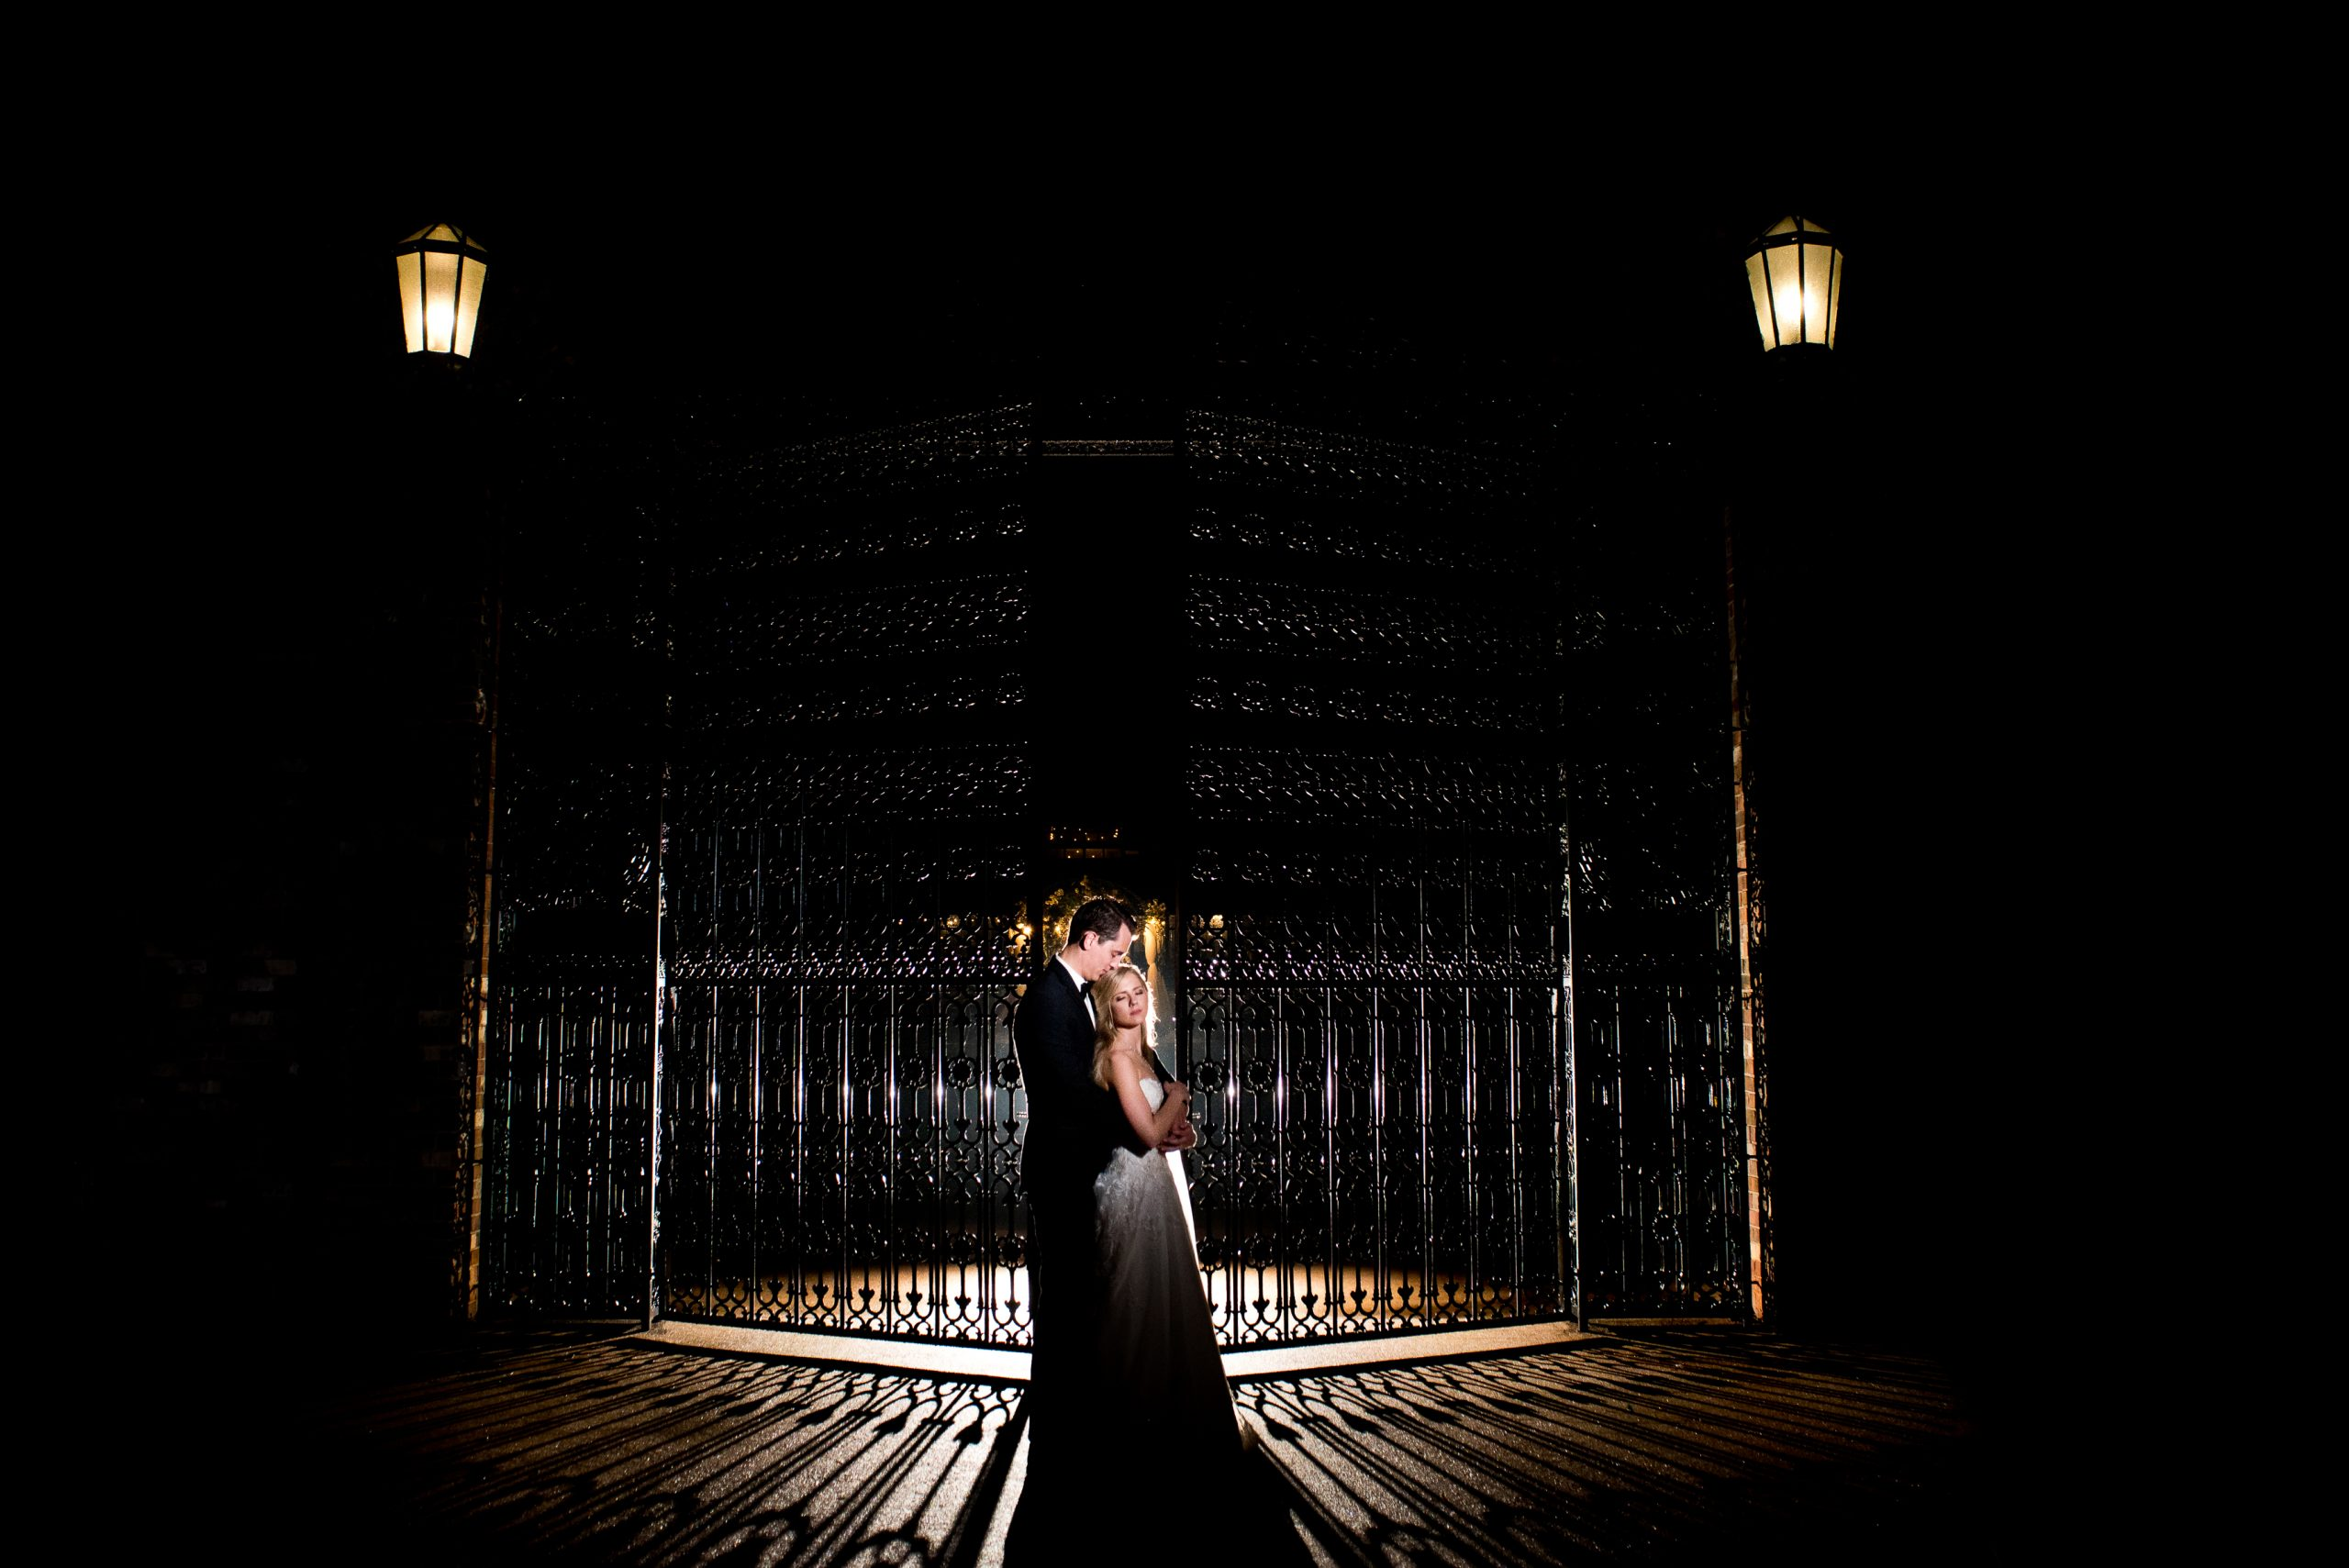 Edinburgh West Wedding | www.noveliphotography.com